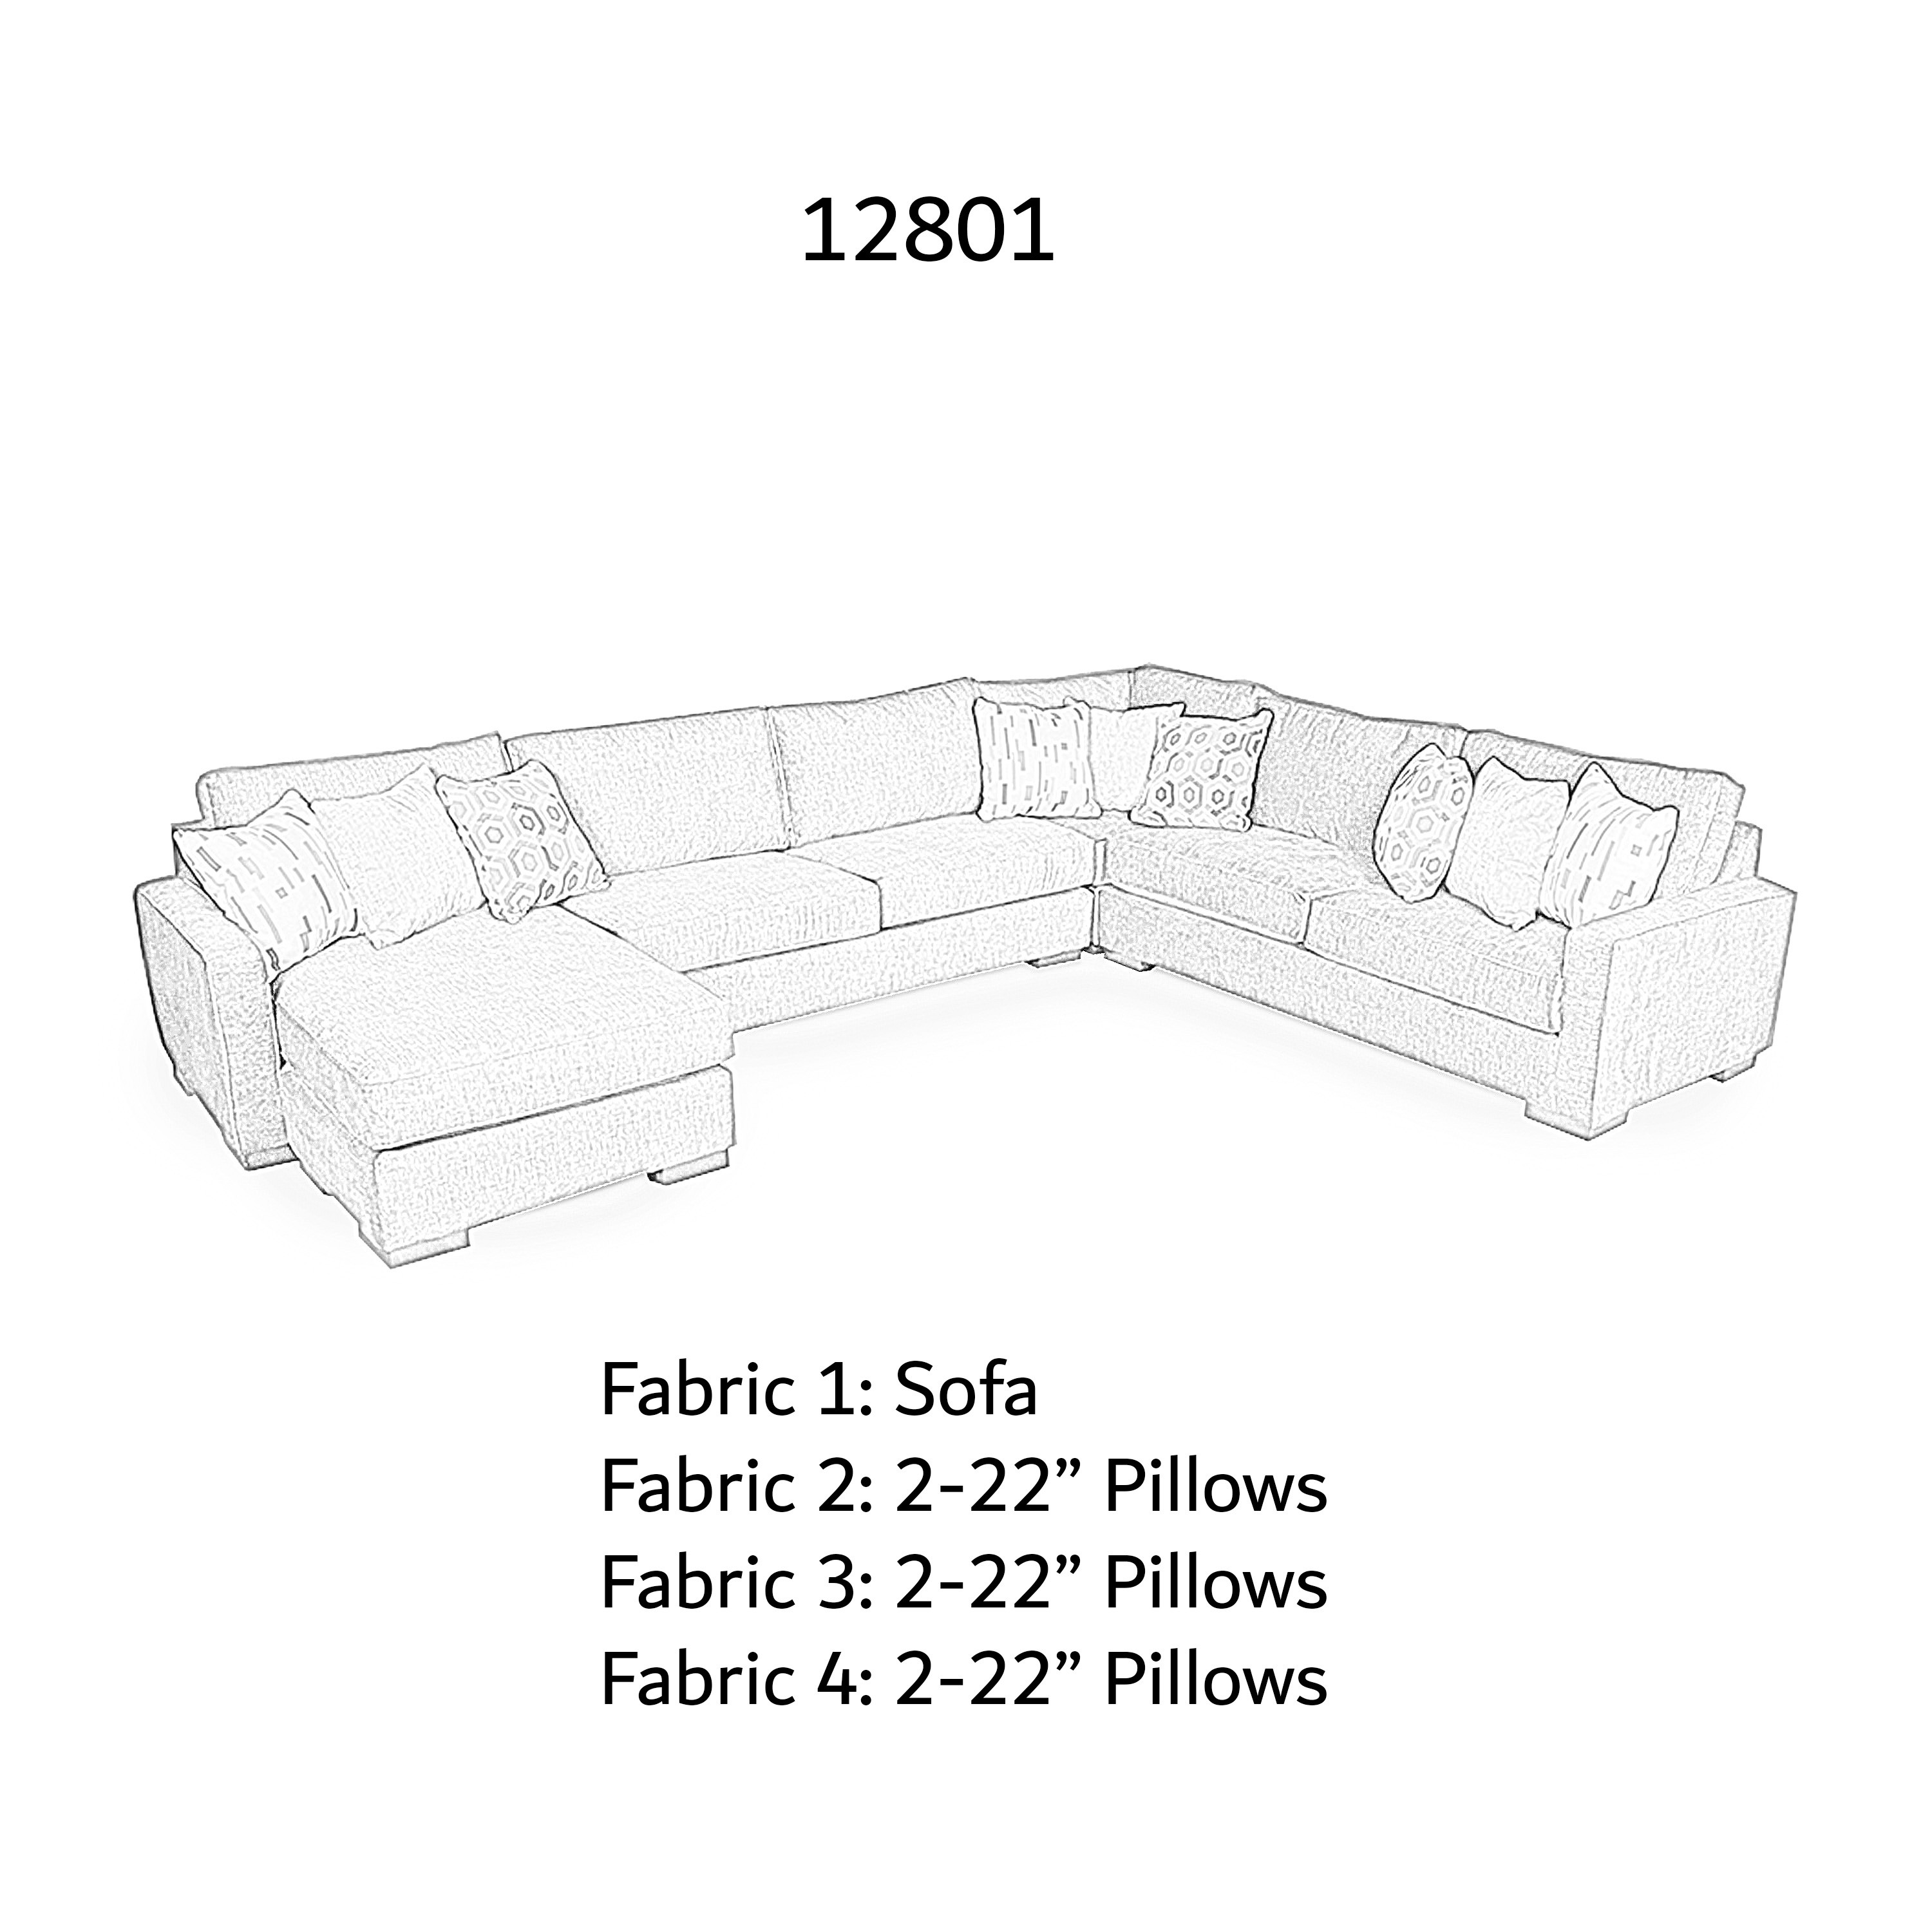 12801 Fabric Schematic on